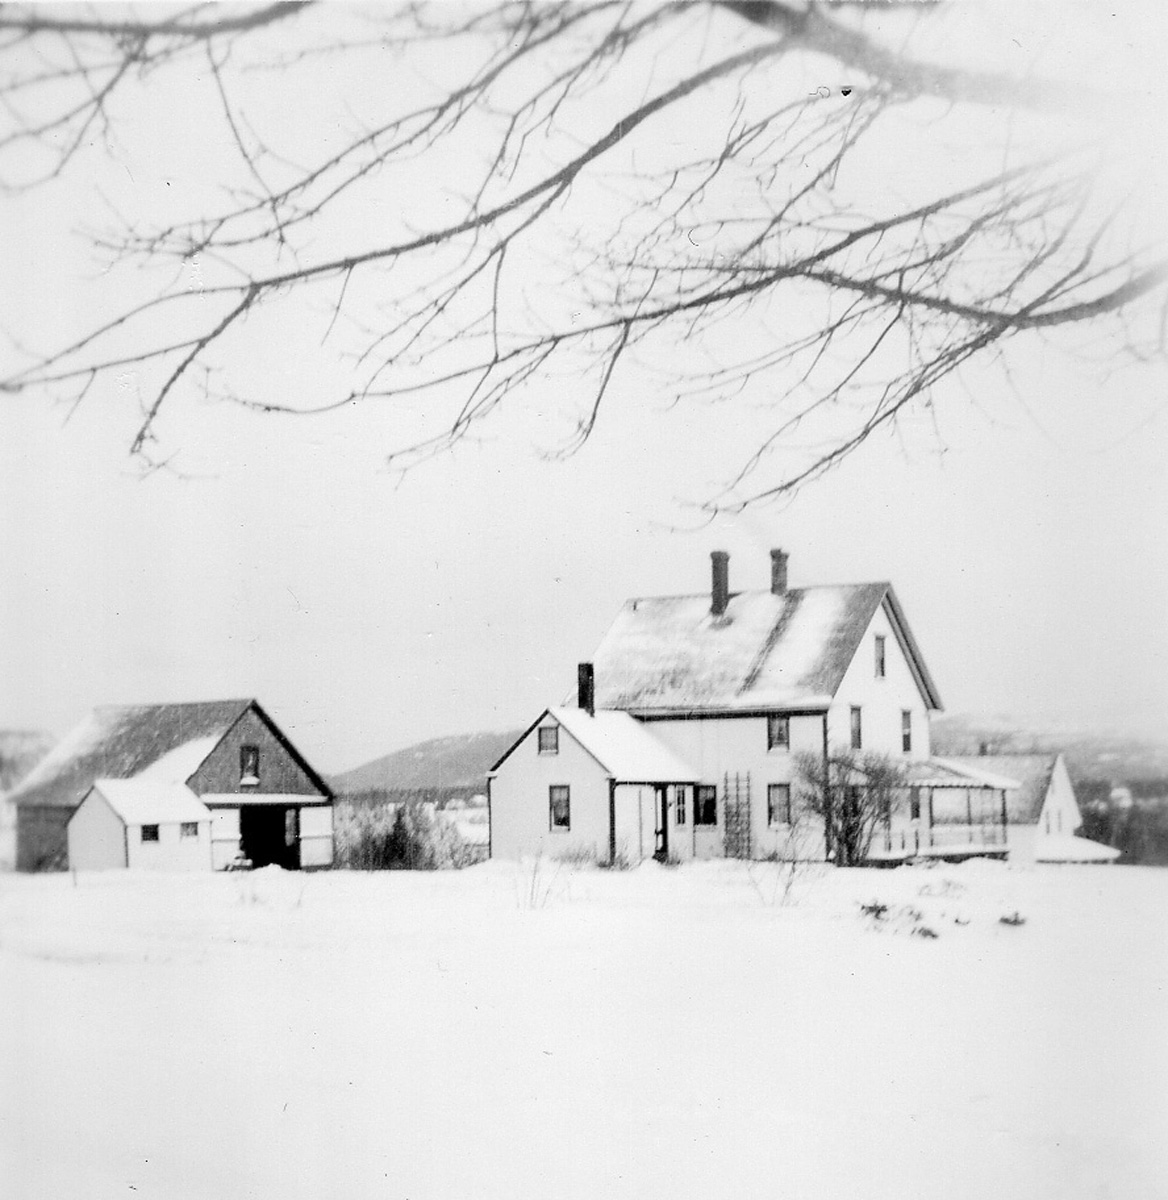 William Holden Whitmore House in Snow